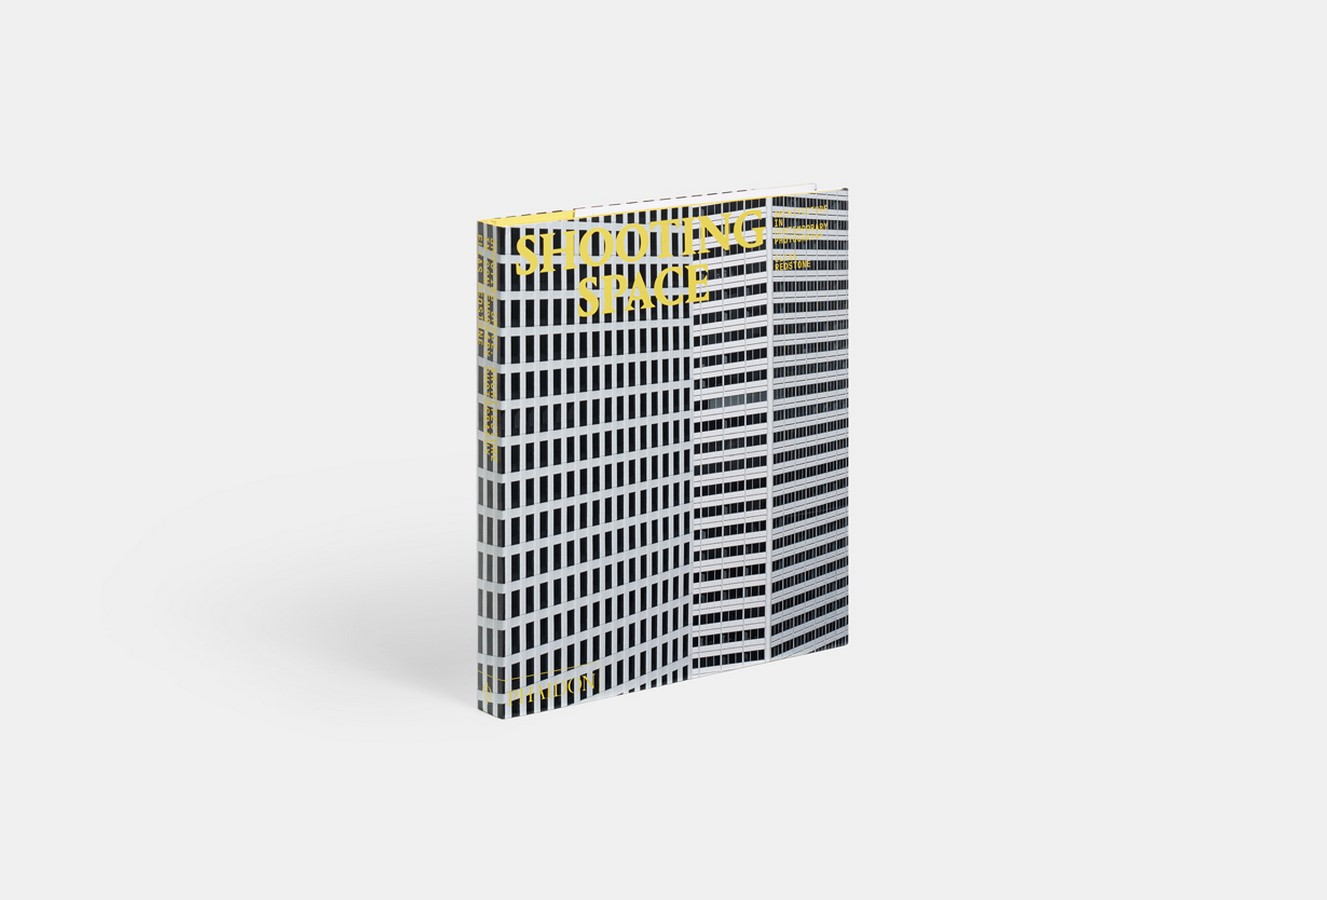 List of 10 books related to Architectural Photography - Sheet13